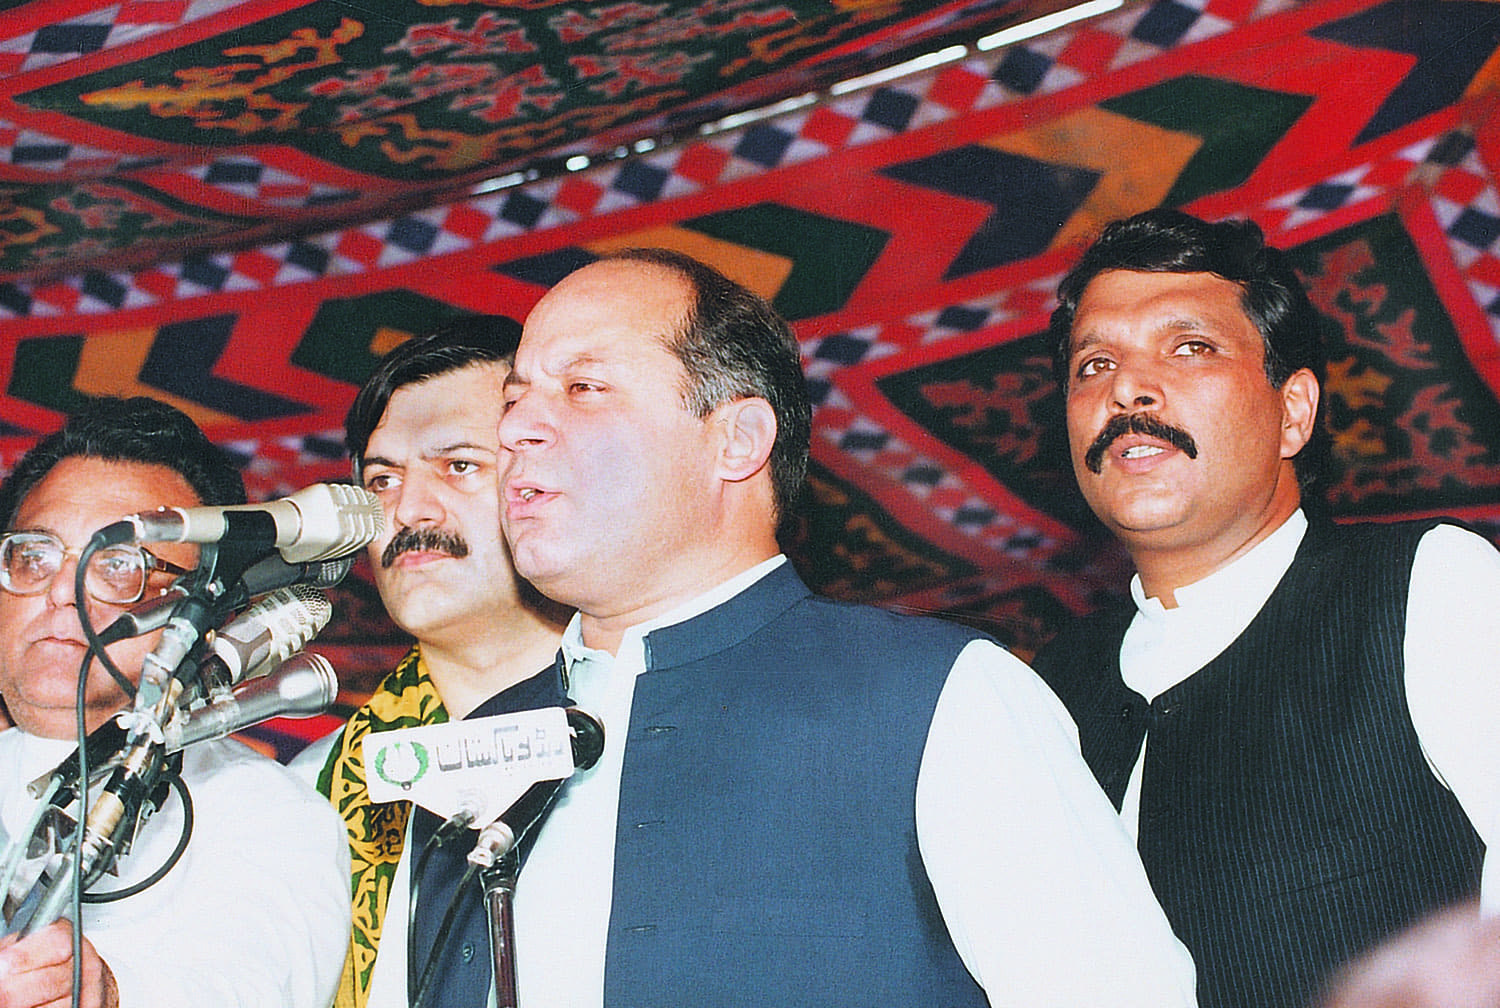 Nawaz Sharif addressing a public meeting in the good old days when he shared the legacy of his mentor with two others. Ejazul Haq (right), the son of General Ziaul Haq, and Humayun Akhtar (left),the son of General Akhtar Abdur Rahman, remained loyal for a while to the man their respective fathers supported. They subsequently moved out of his shadow and went their own independent ways.